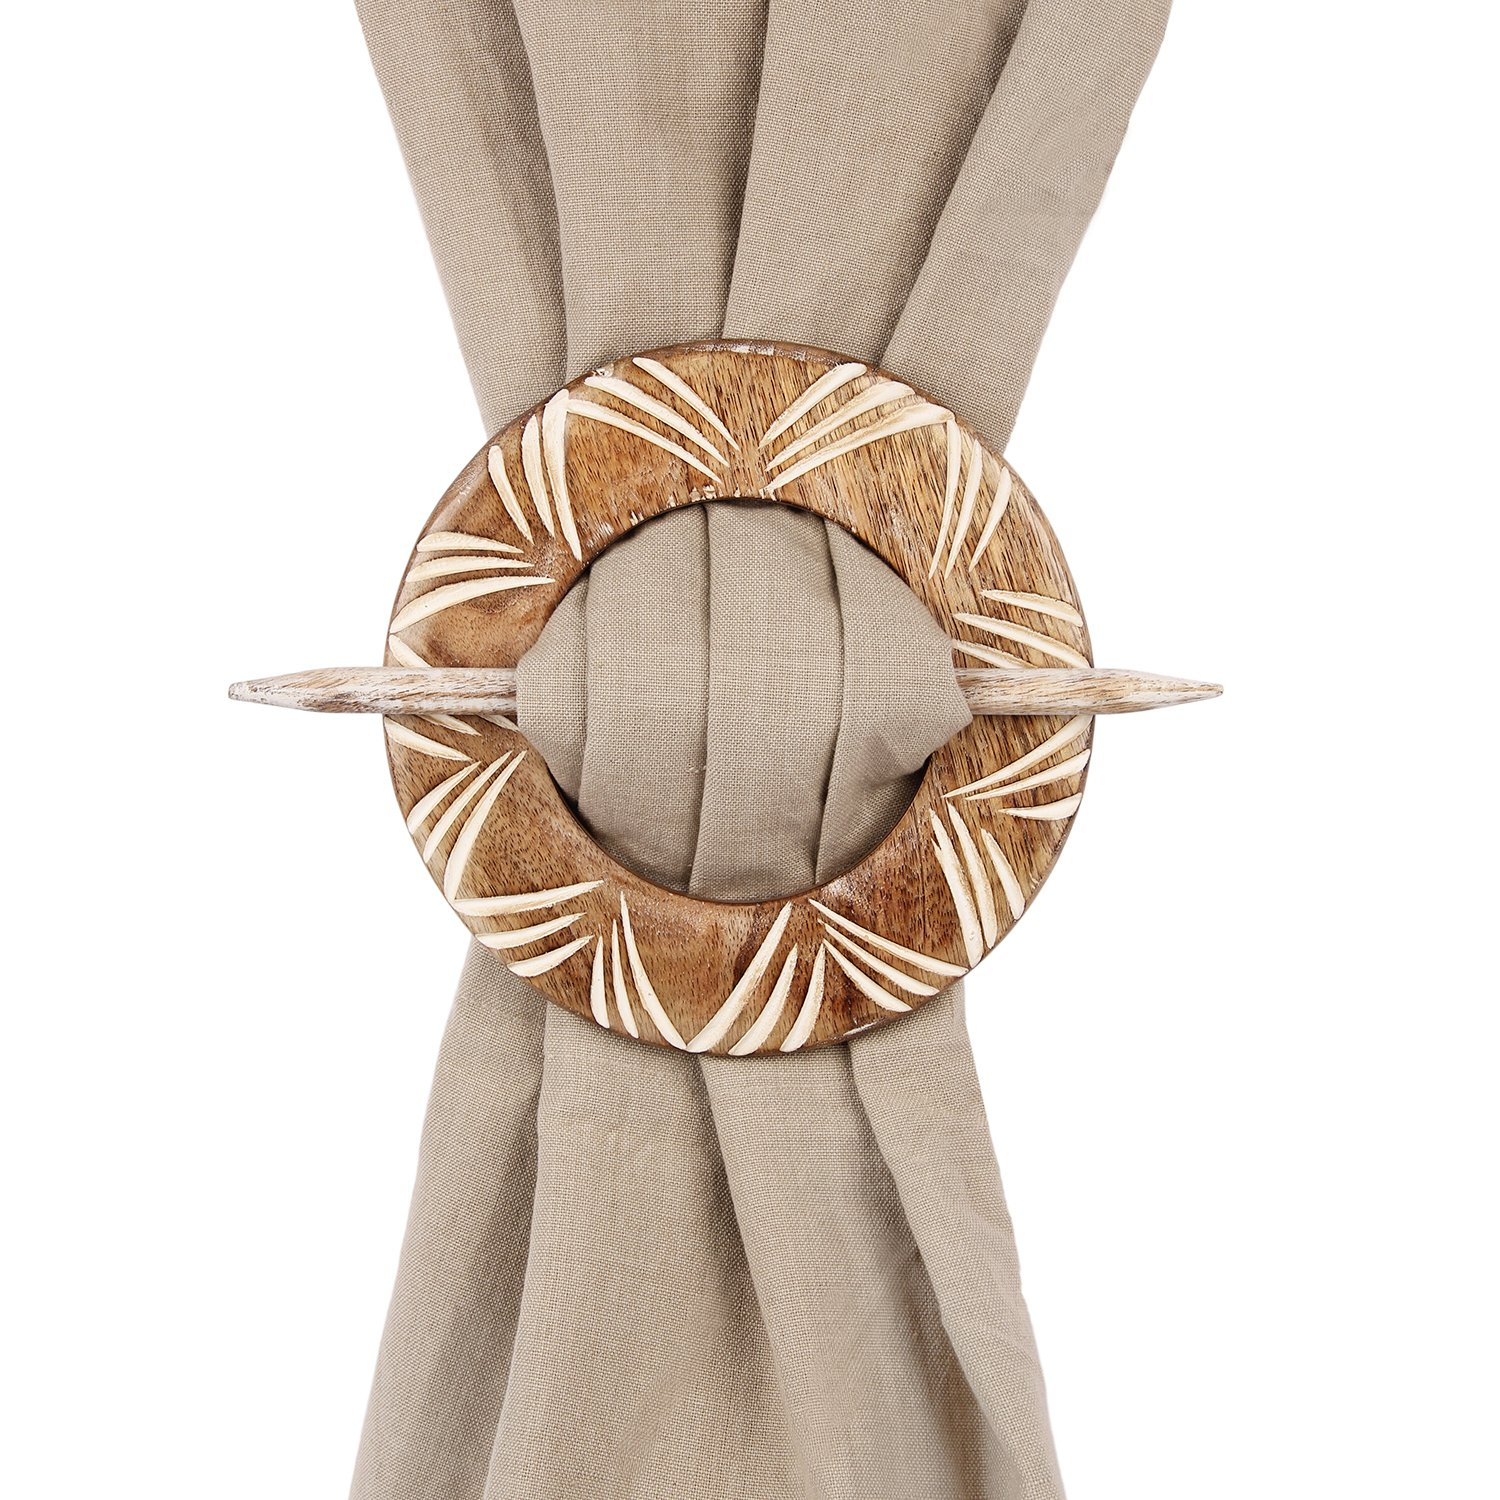 Aheli Decorative Wooden Curtain Tiebacks Set of 2 Window Treatment Holdbacks Drape Binds Hand Carved with White Distressed Finish by Aheli (Image #1)